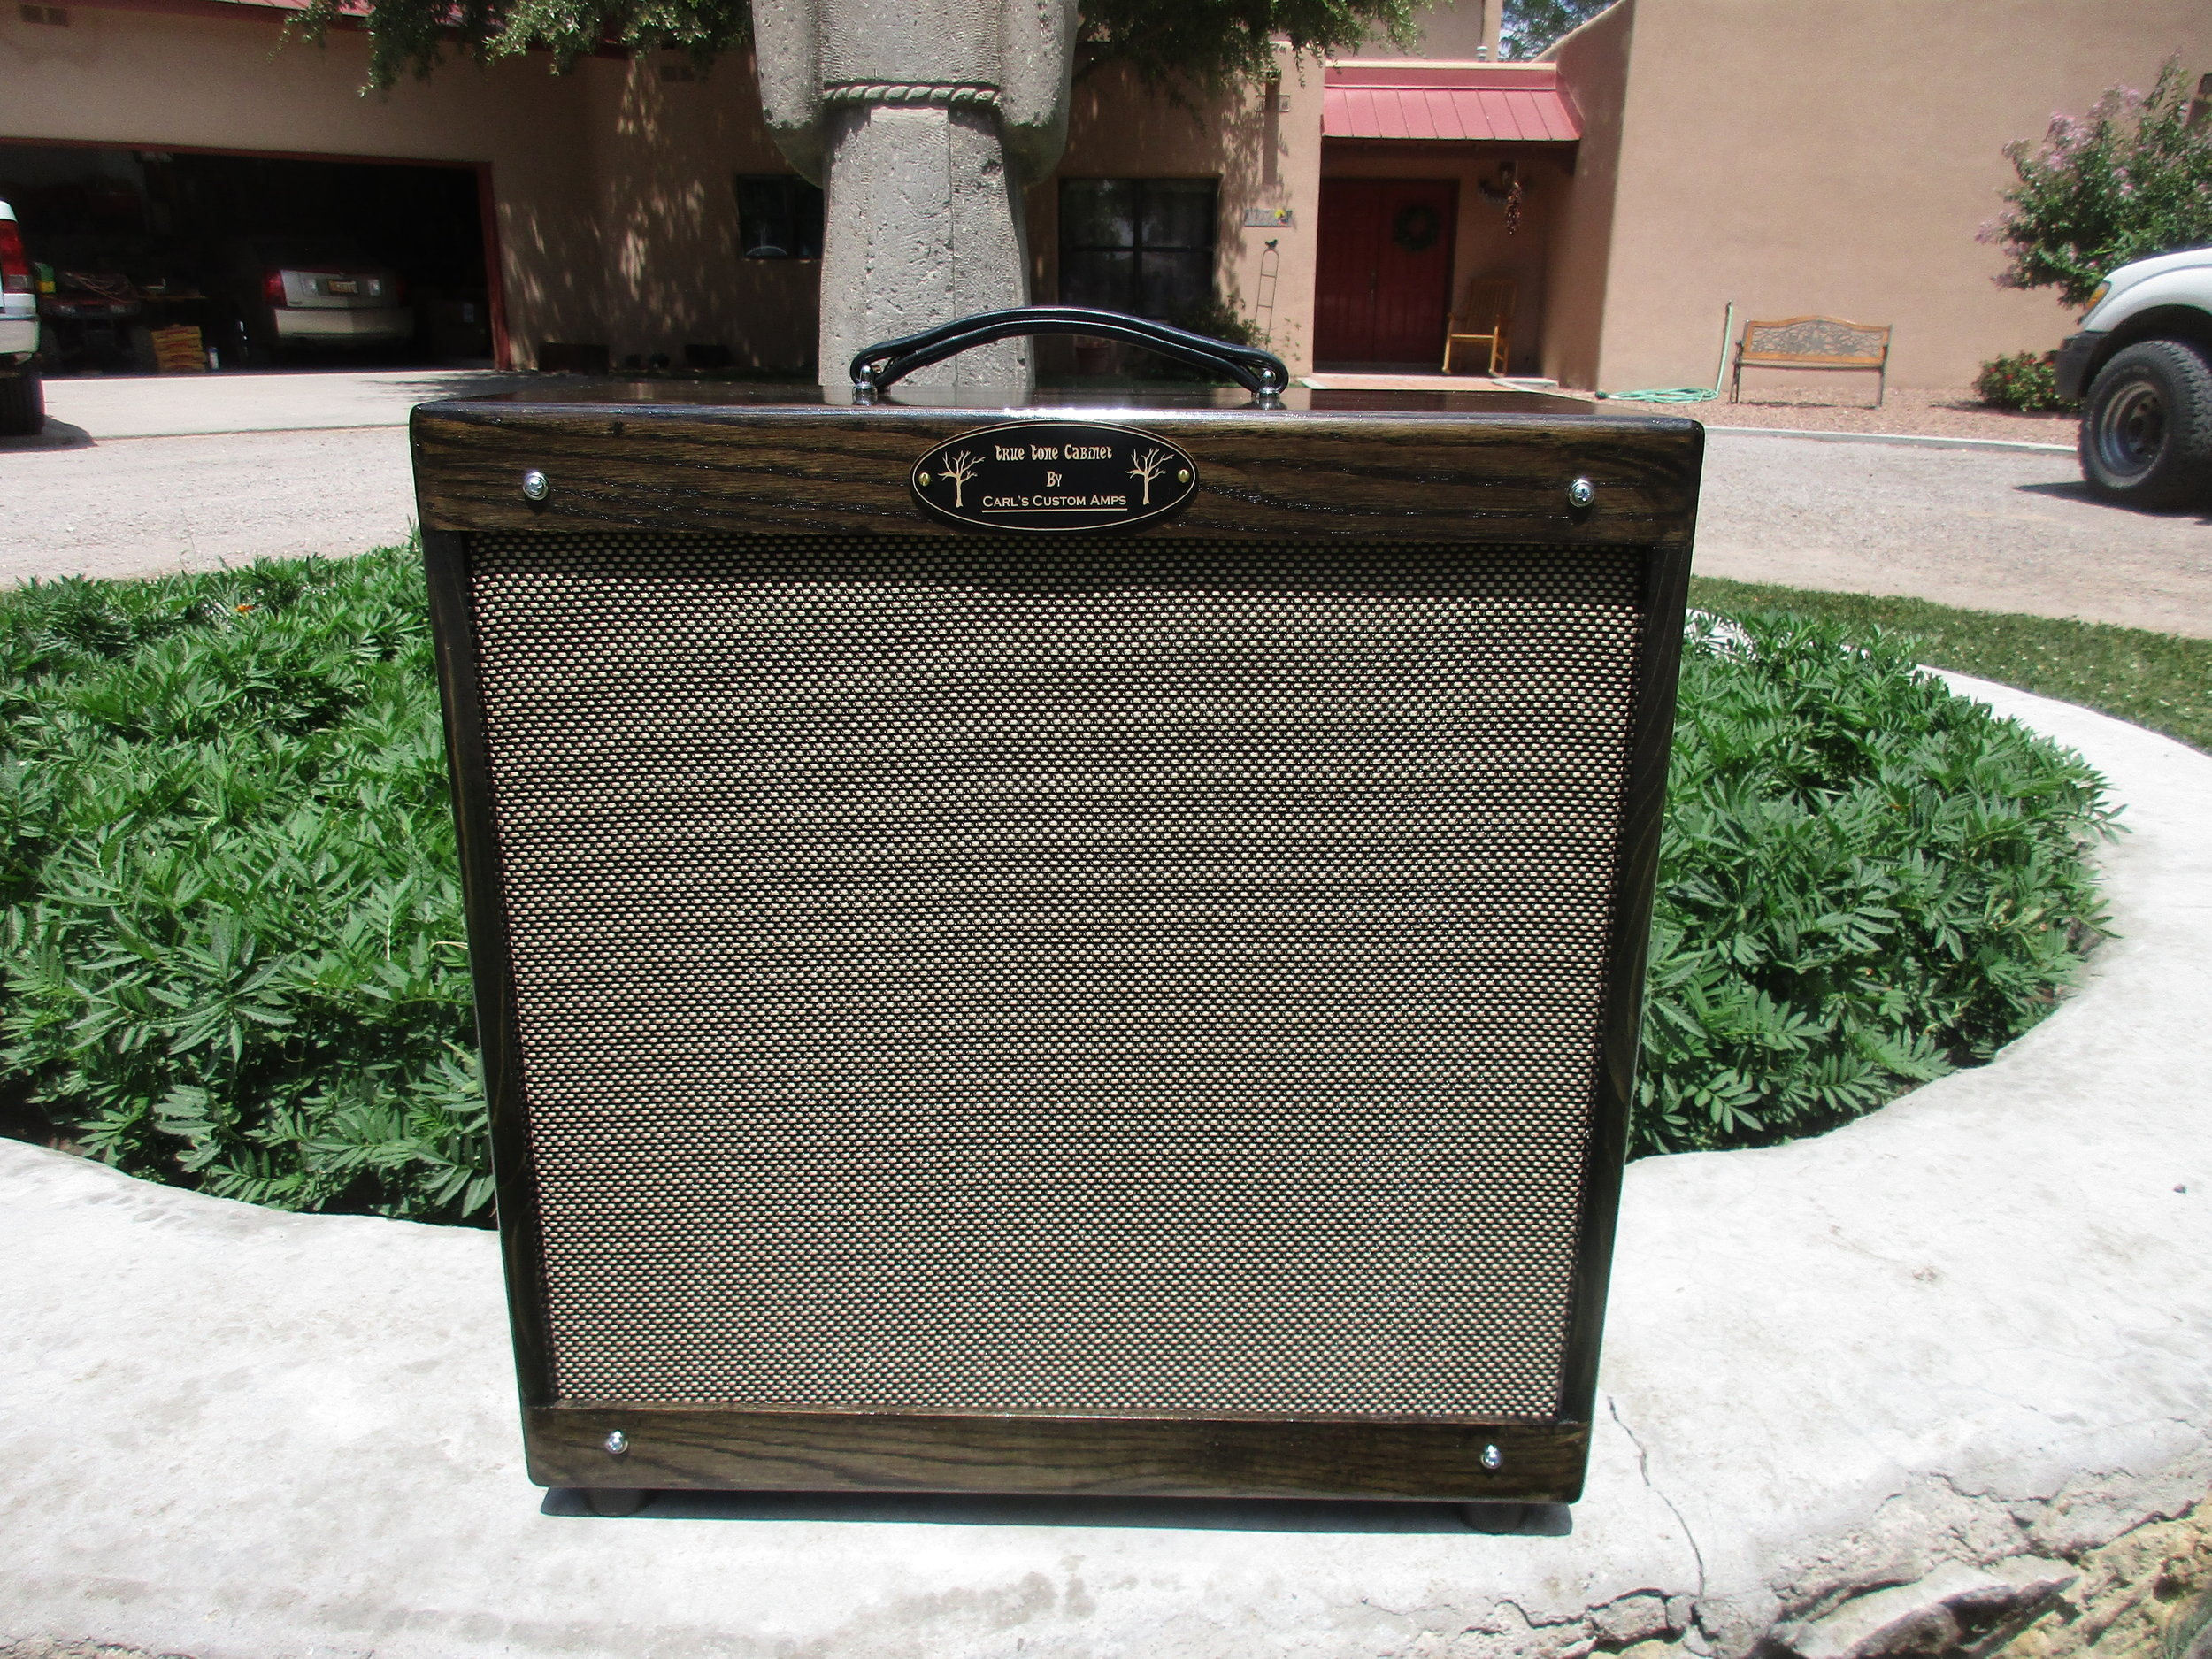 Custom 1x15 Pine Cab!! Pretty and shipped with cover to prevent dents.